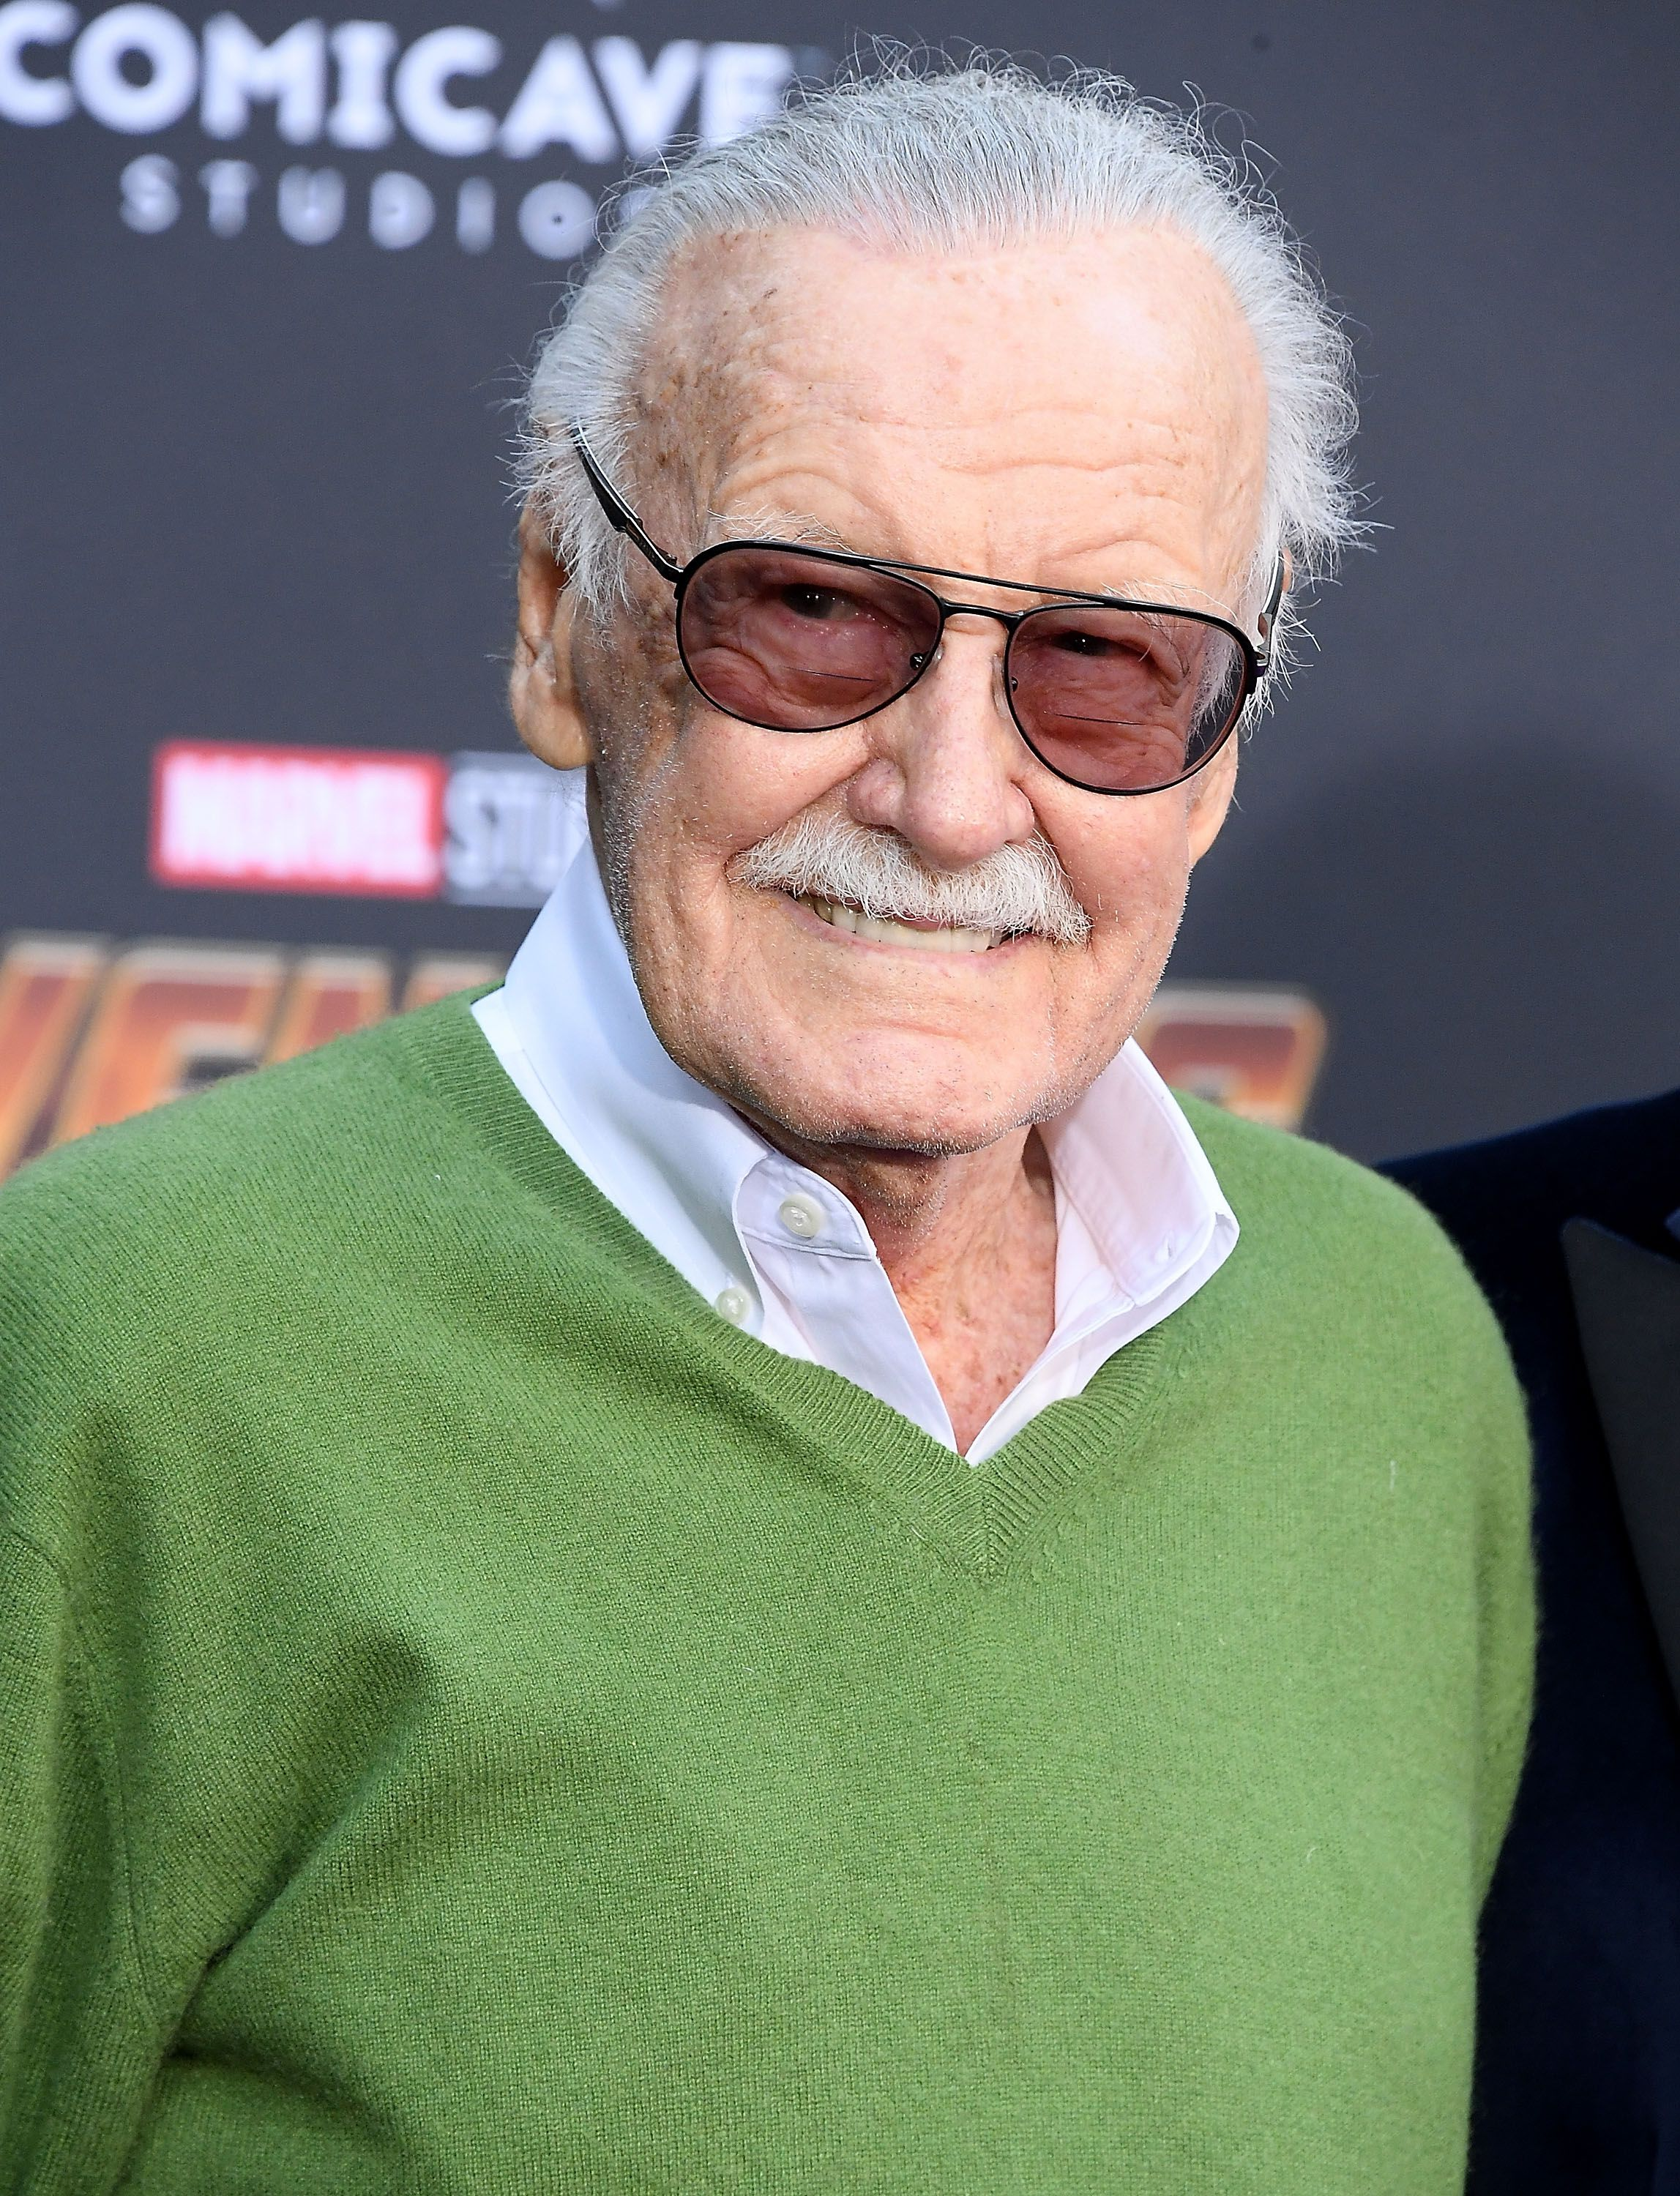 Stan Lee American Comic Book Writer, Editor, Publisher, Actor, Television Host